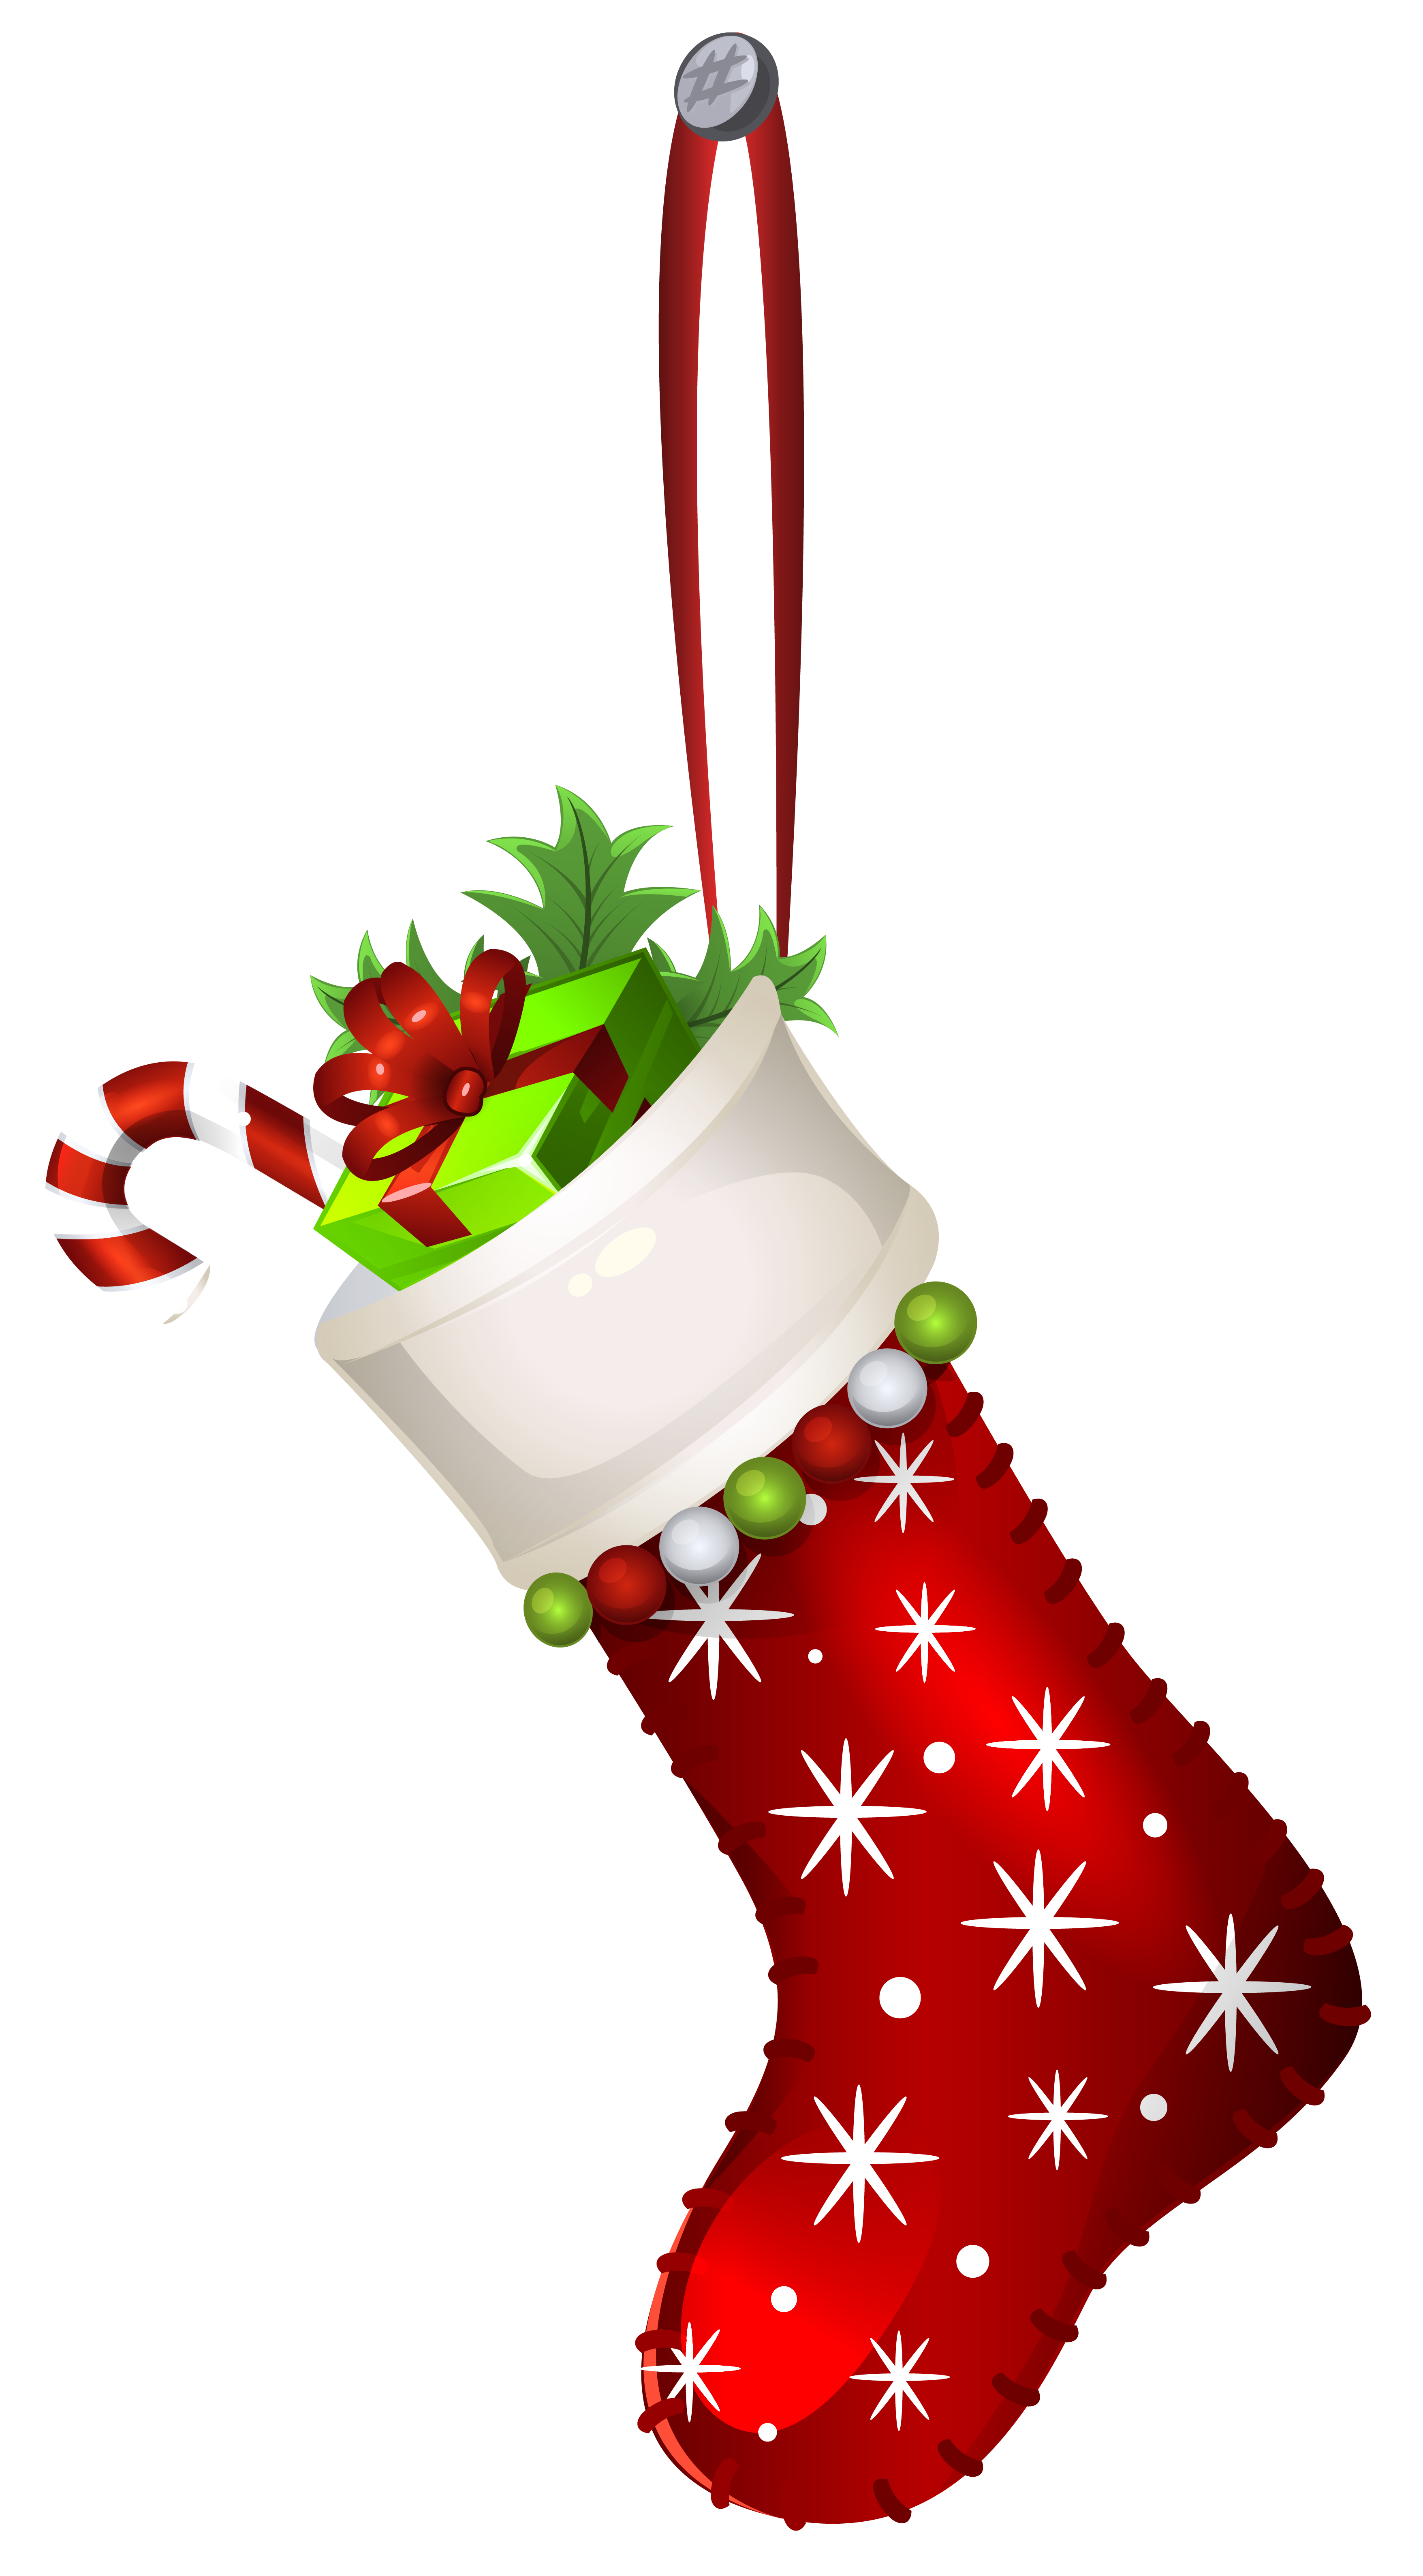 Santa Stocking Png - Red Christmas Stocking Transparent PNG Clip Art Image   Gallery ...